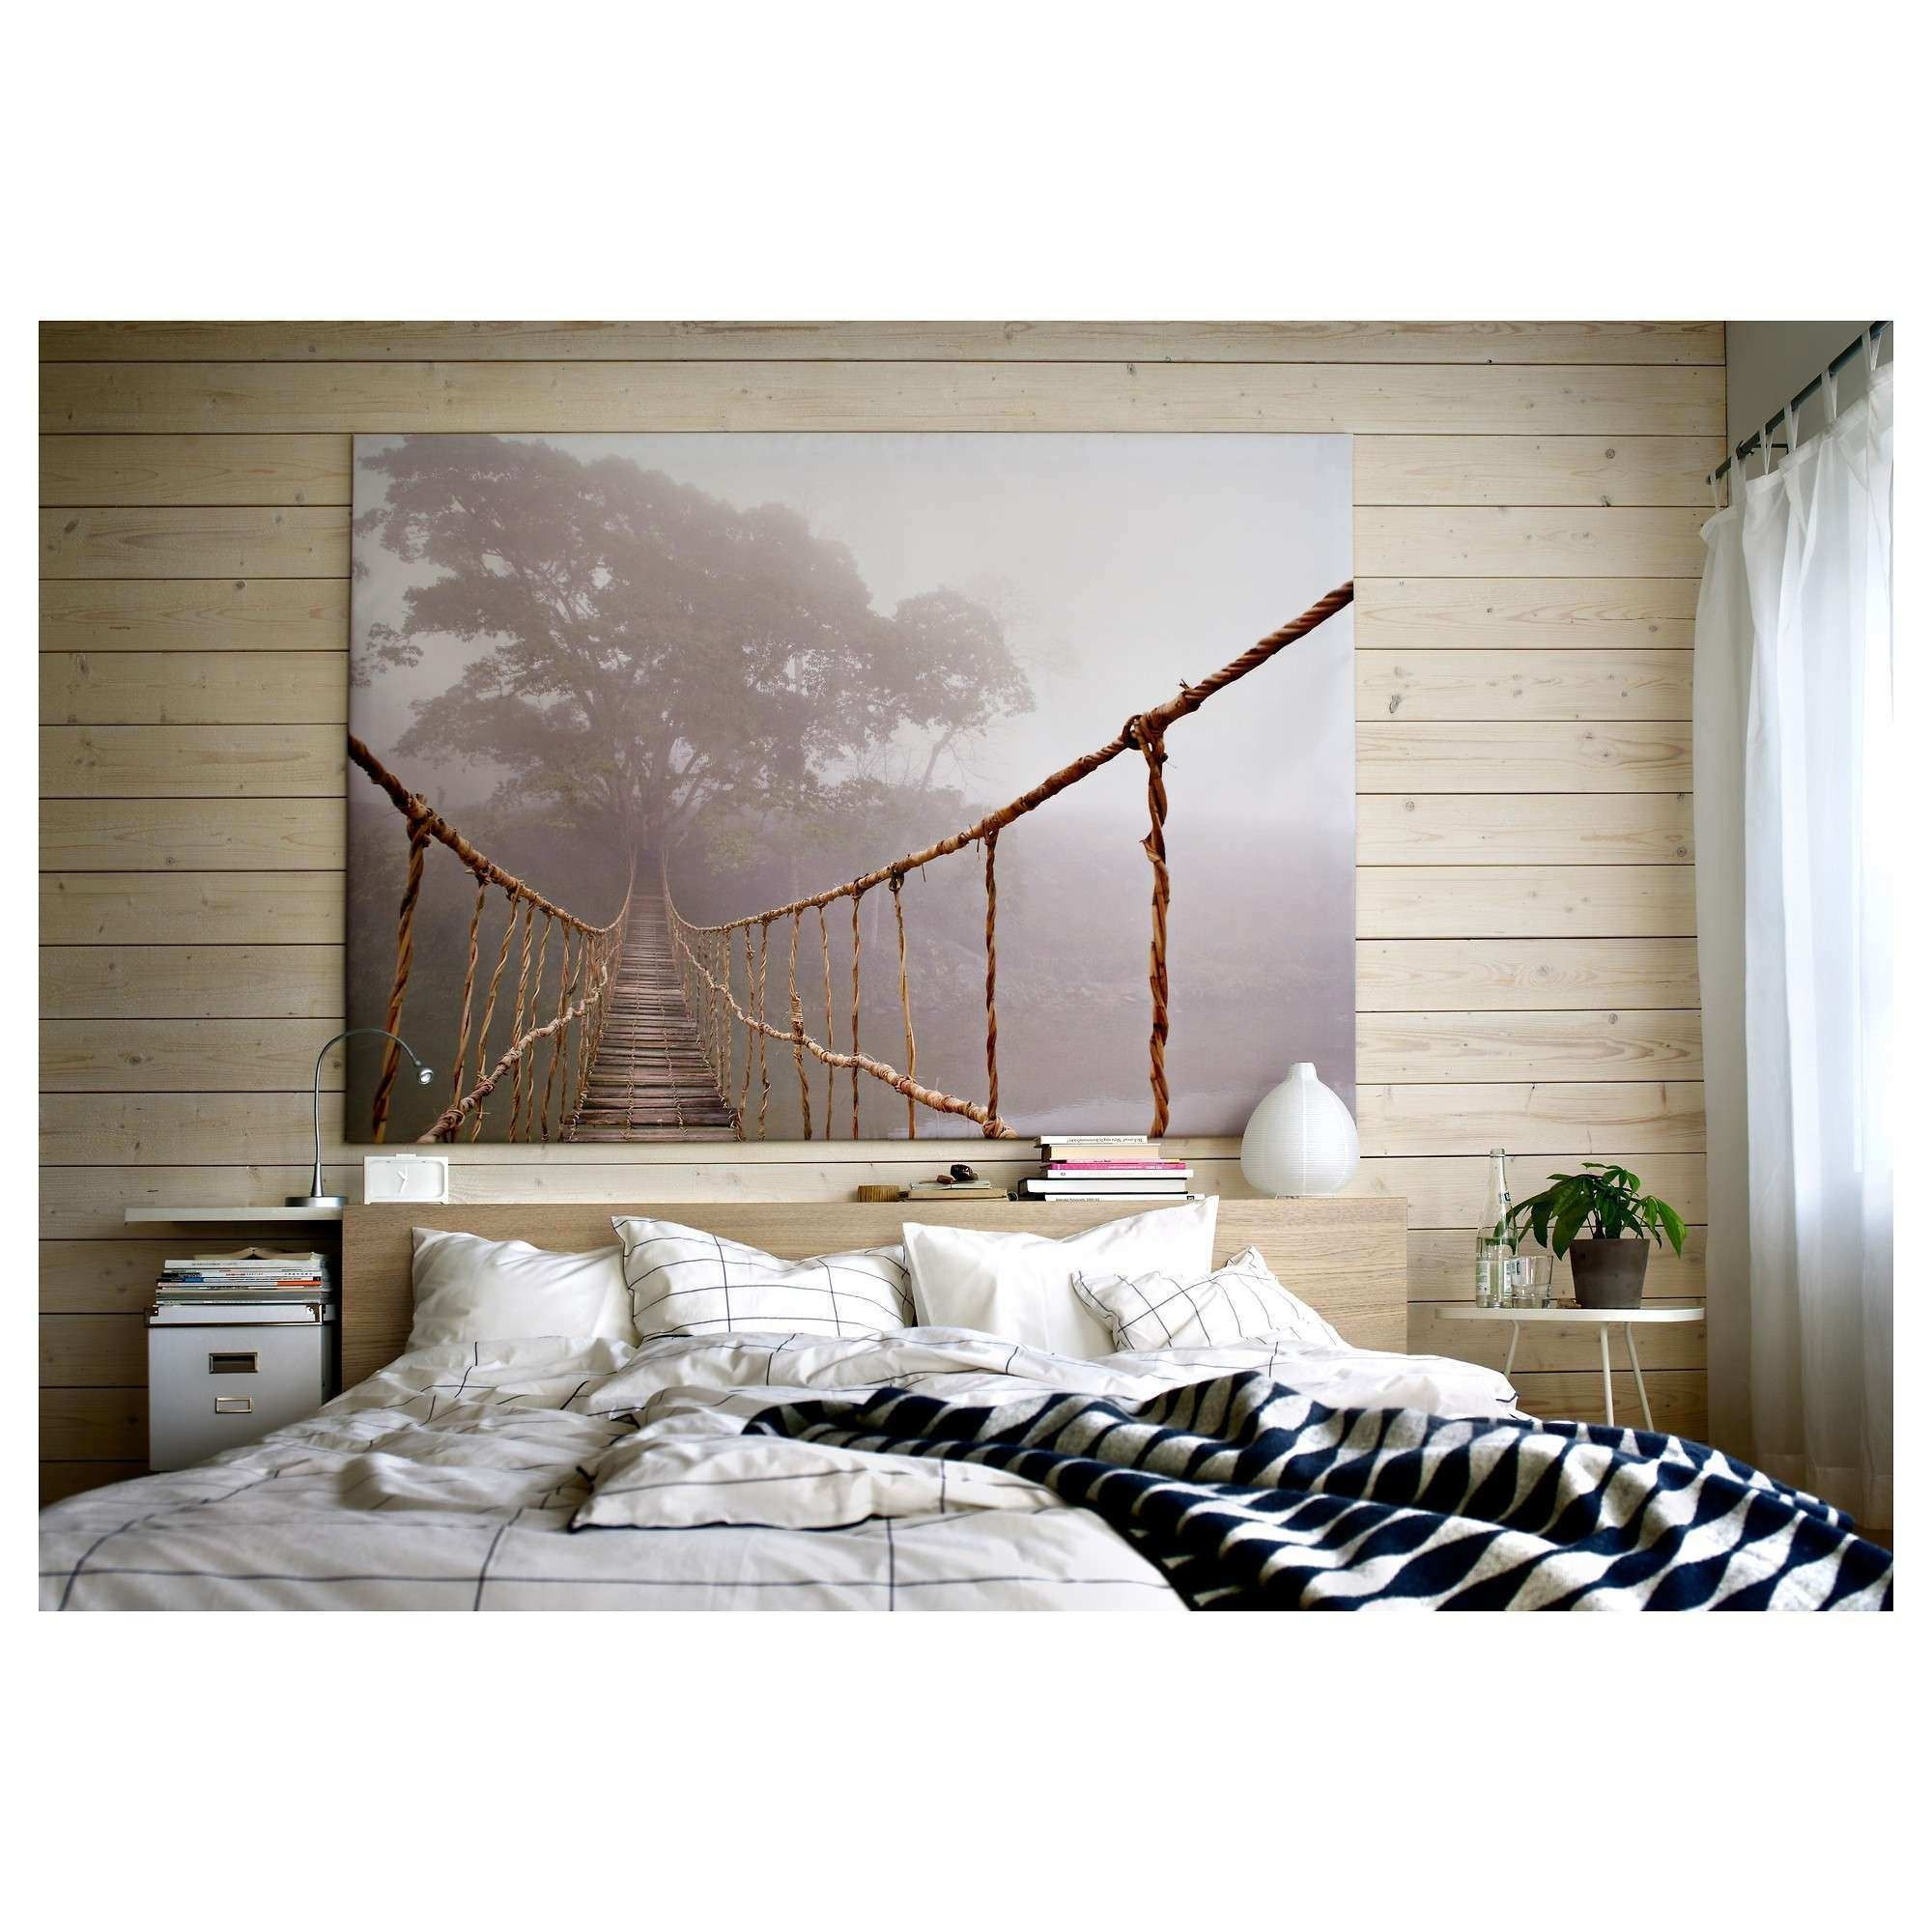 Giant Wall Art New Ikea Wall Art Takuice | Wall Art Ideas With Most Recent Giant Wall Art (View 10 of 20)